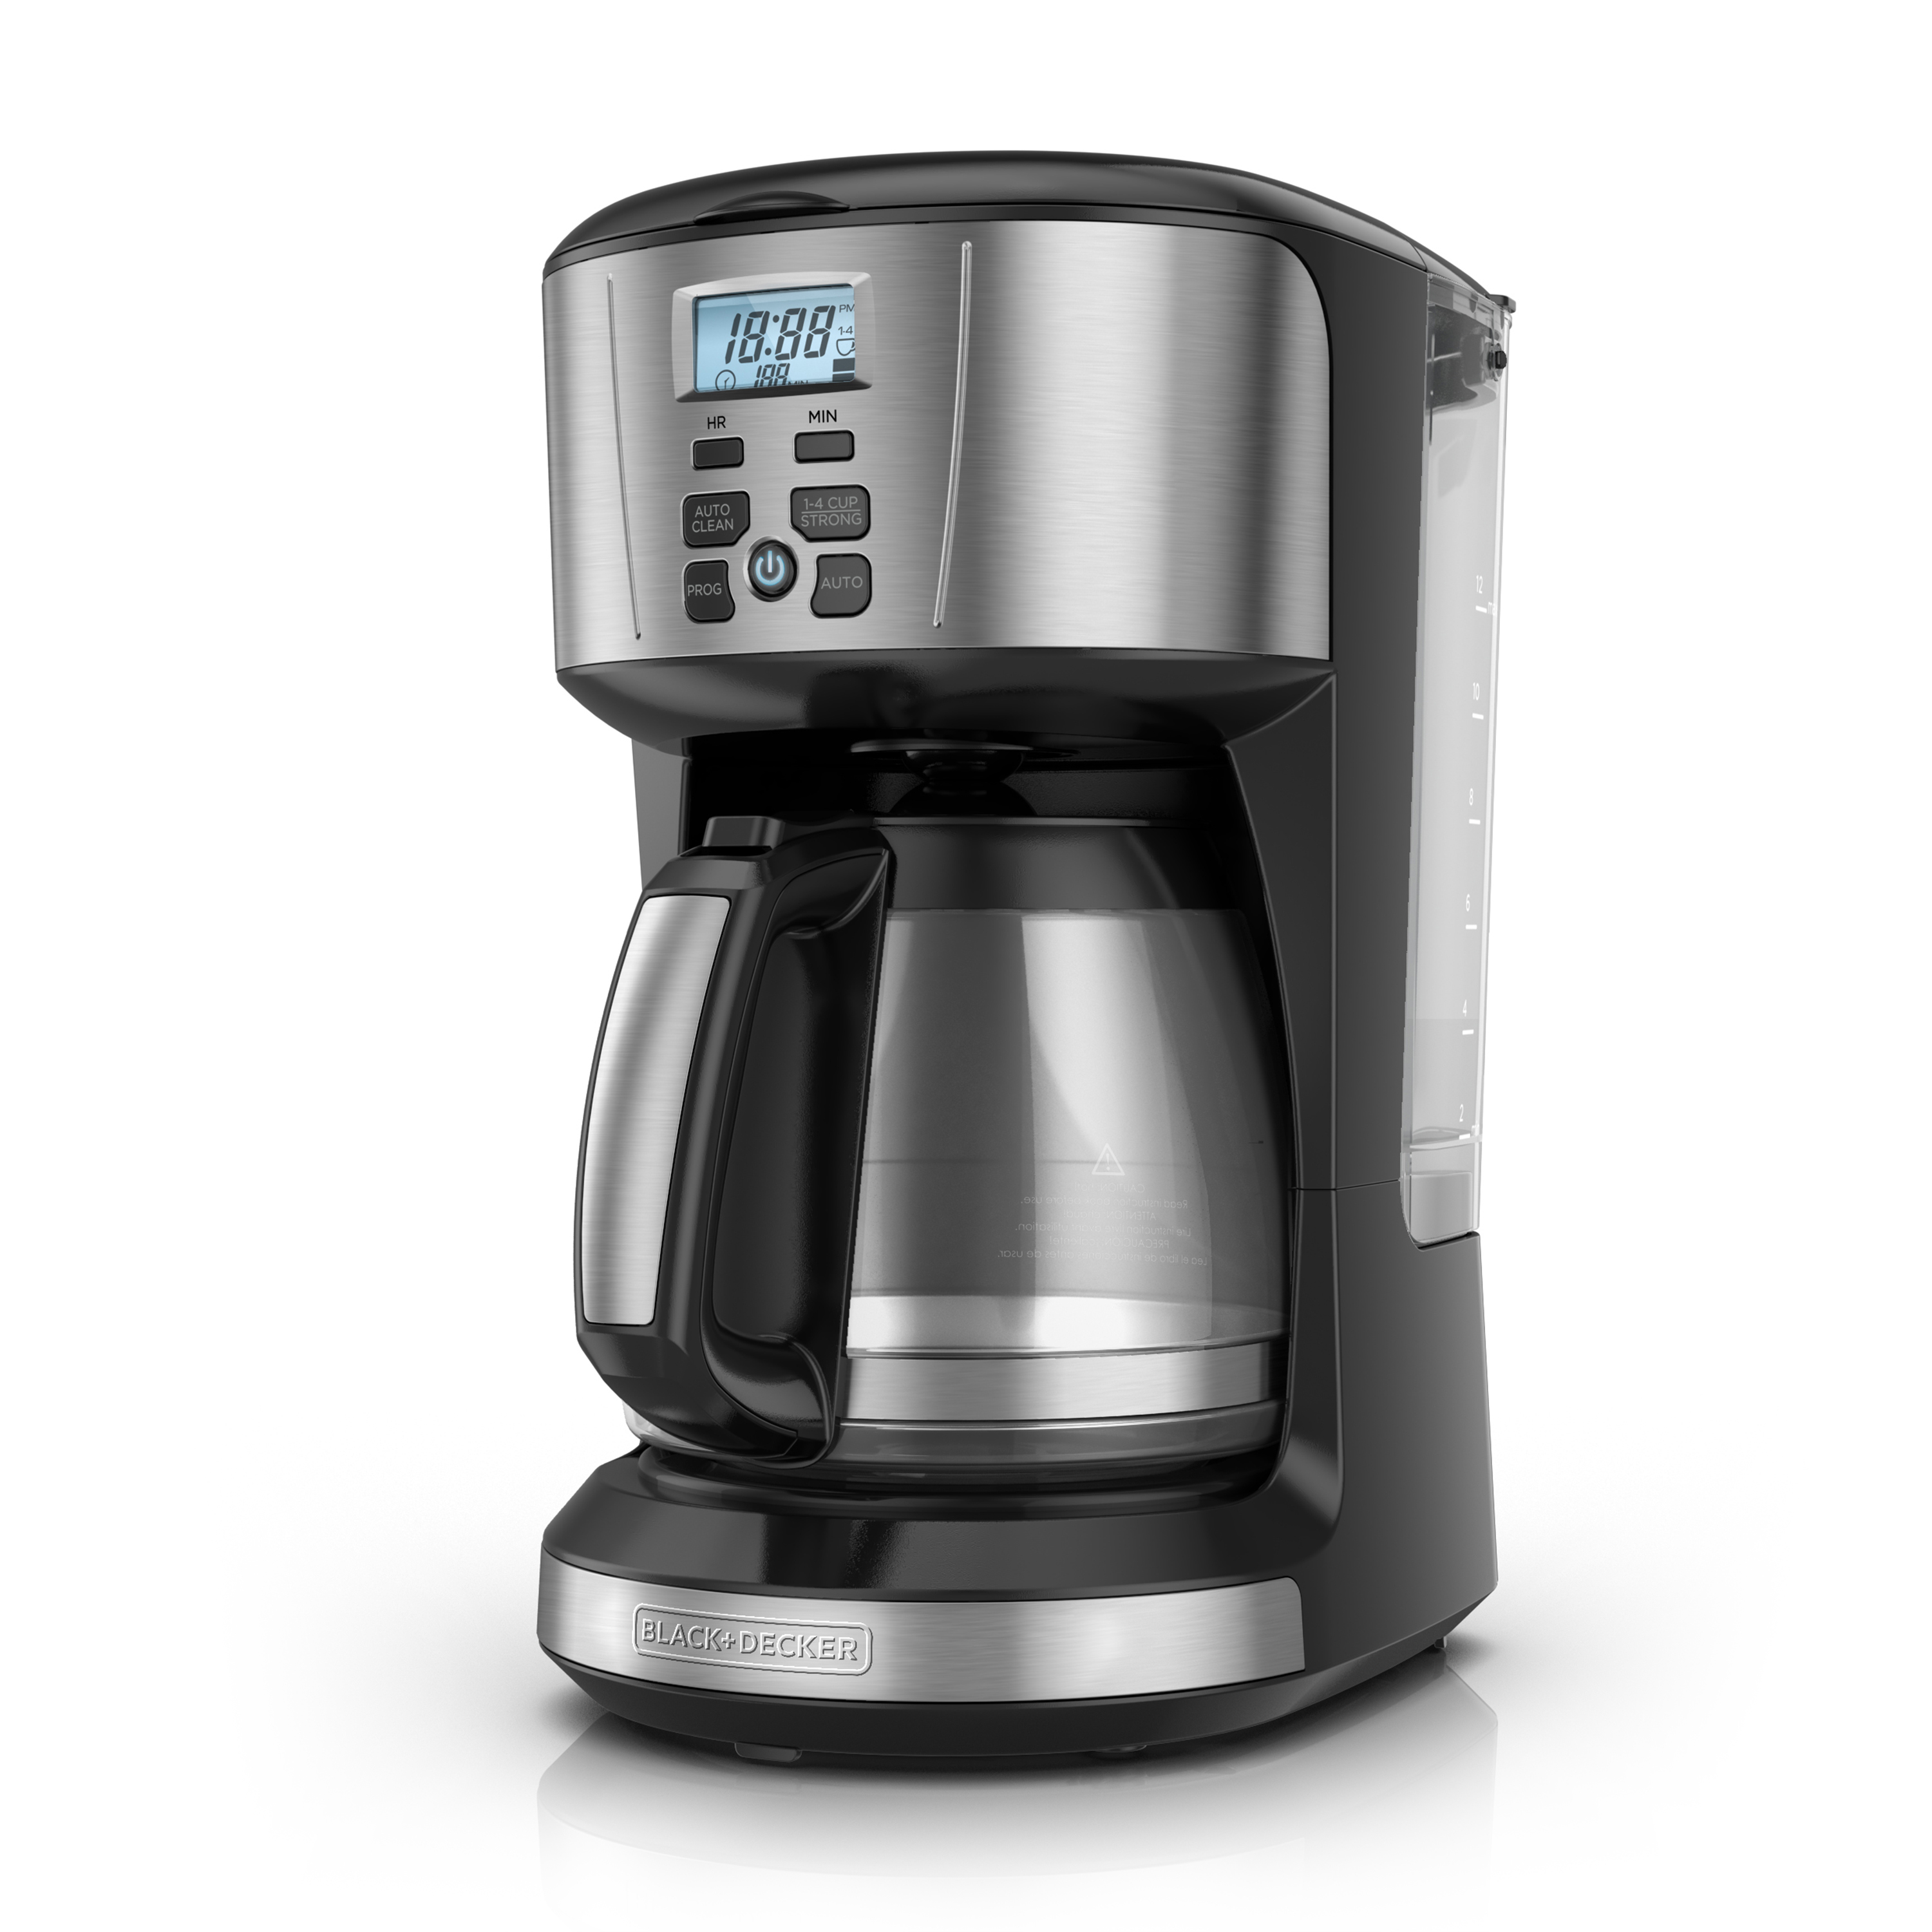 BLACK+DECKER 12-Cup Programmable Coffee Maker with Removable Water Reservoir, Black/Stainless Steel, CM4110S